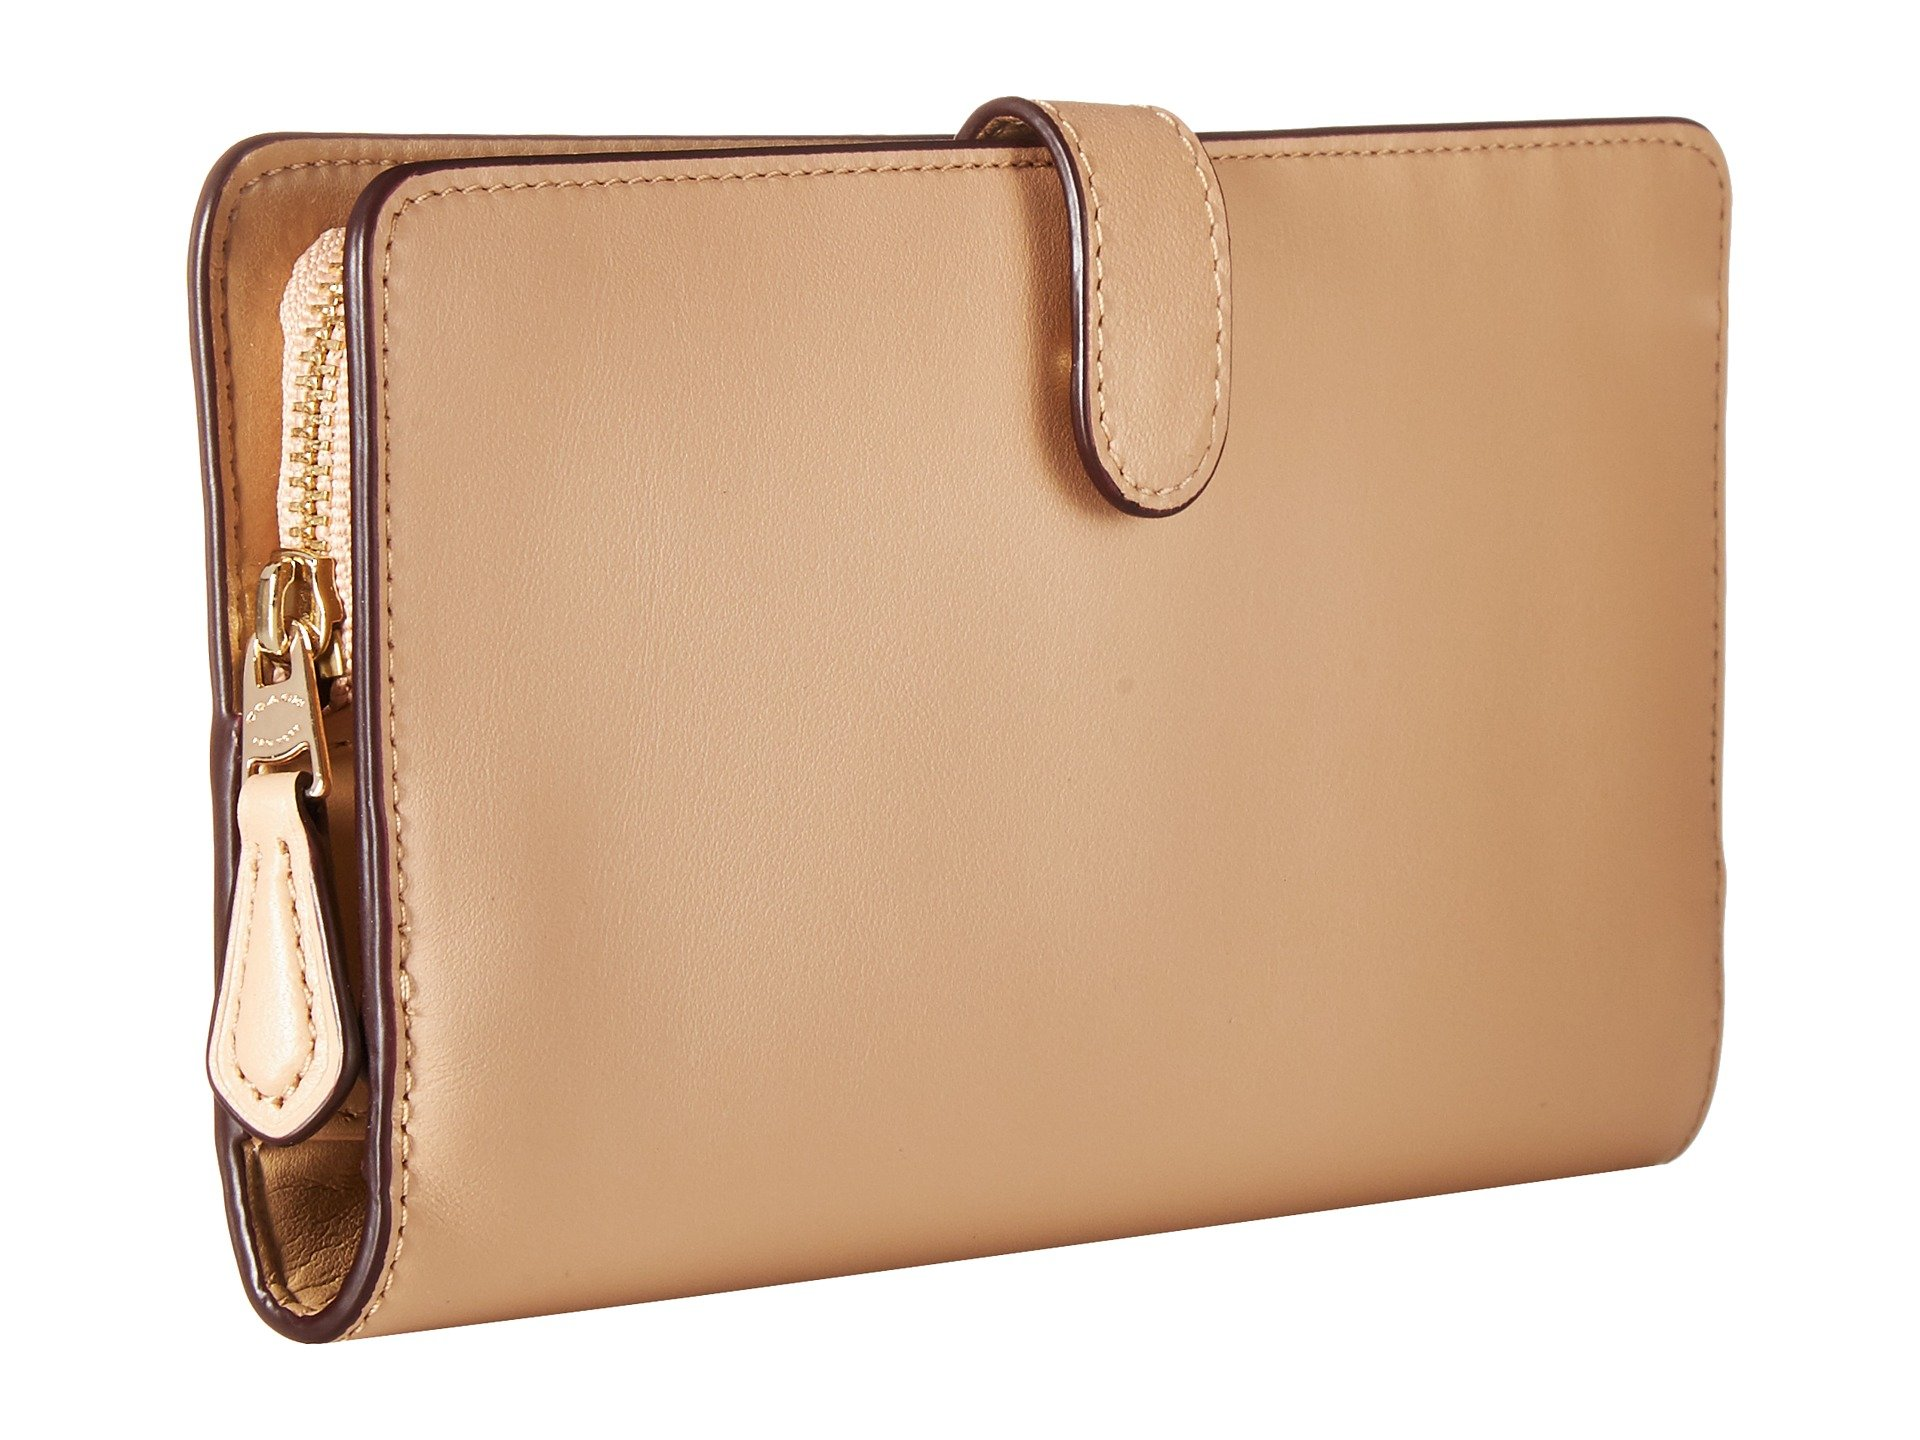 COACH Skinny Wallet in Smooth Leather at Zappos.com